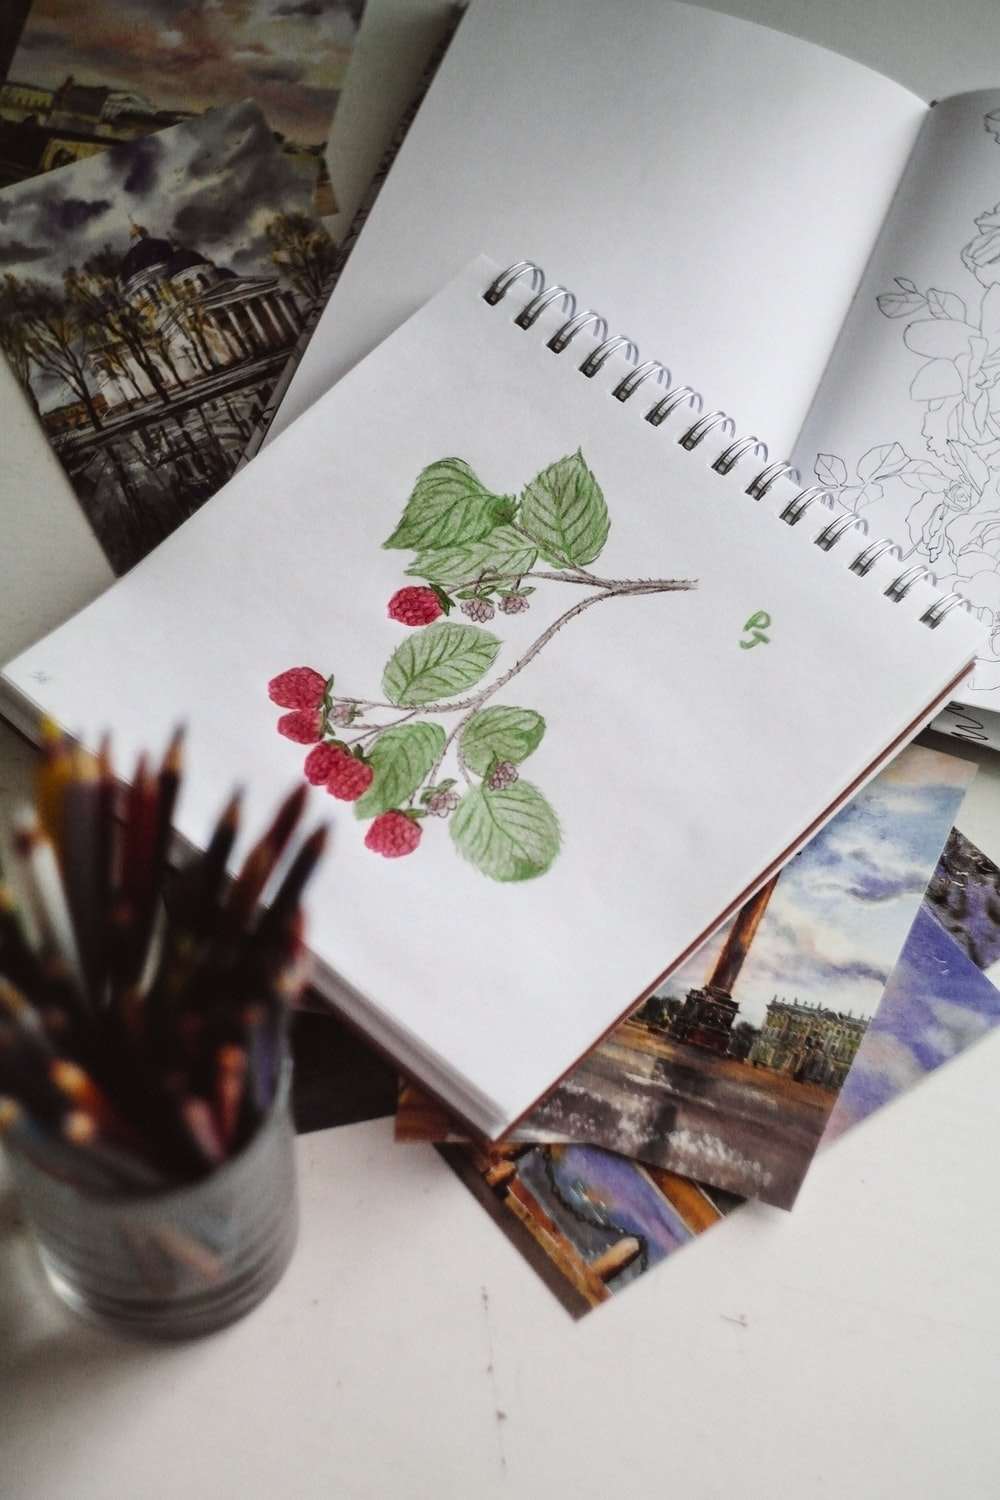 green and red plant on white paper